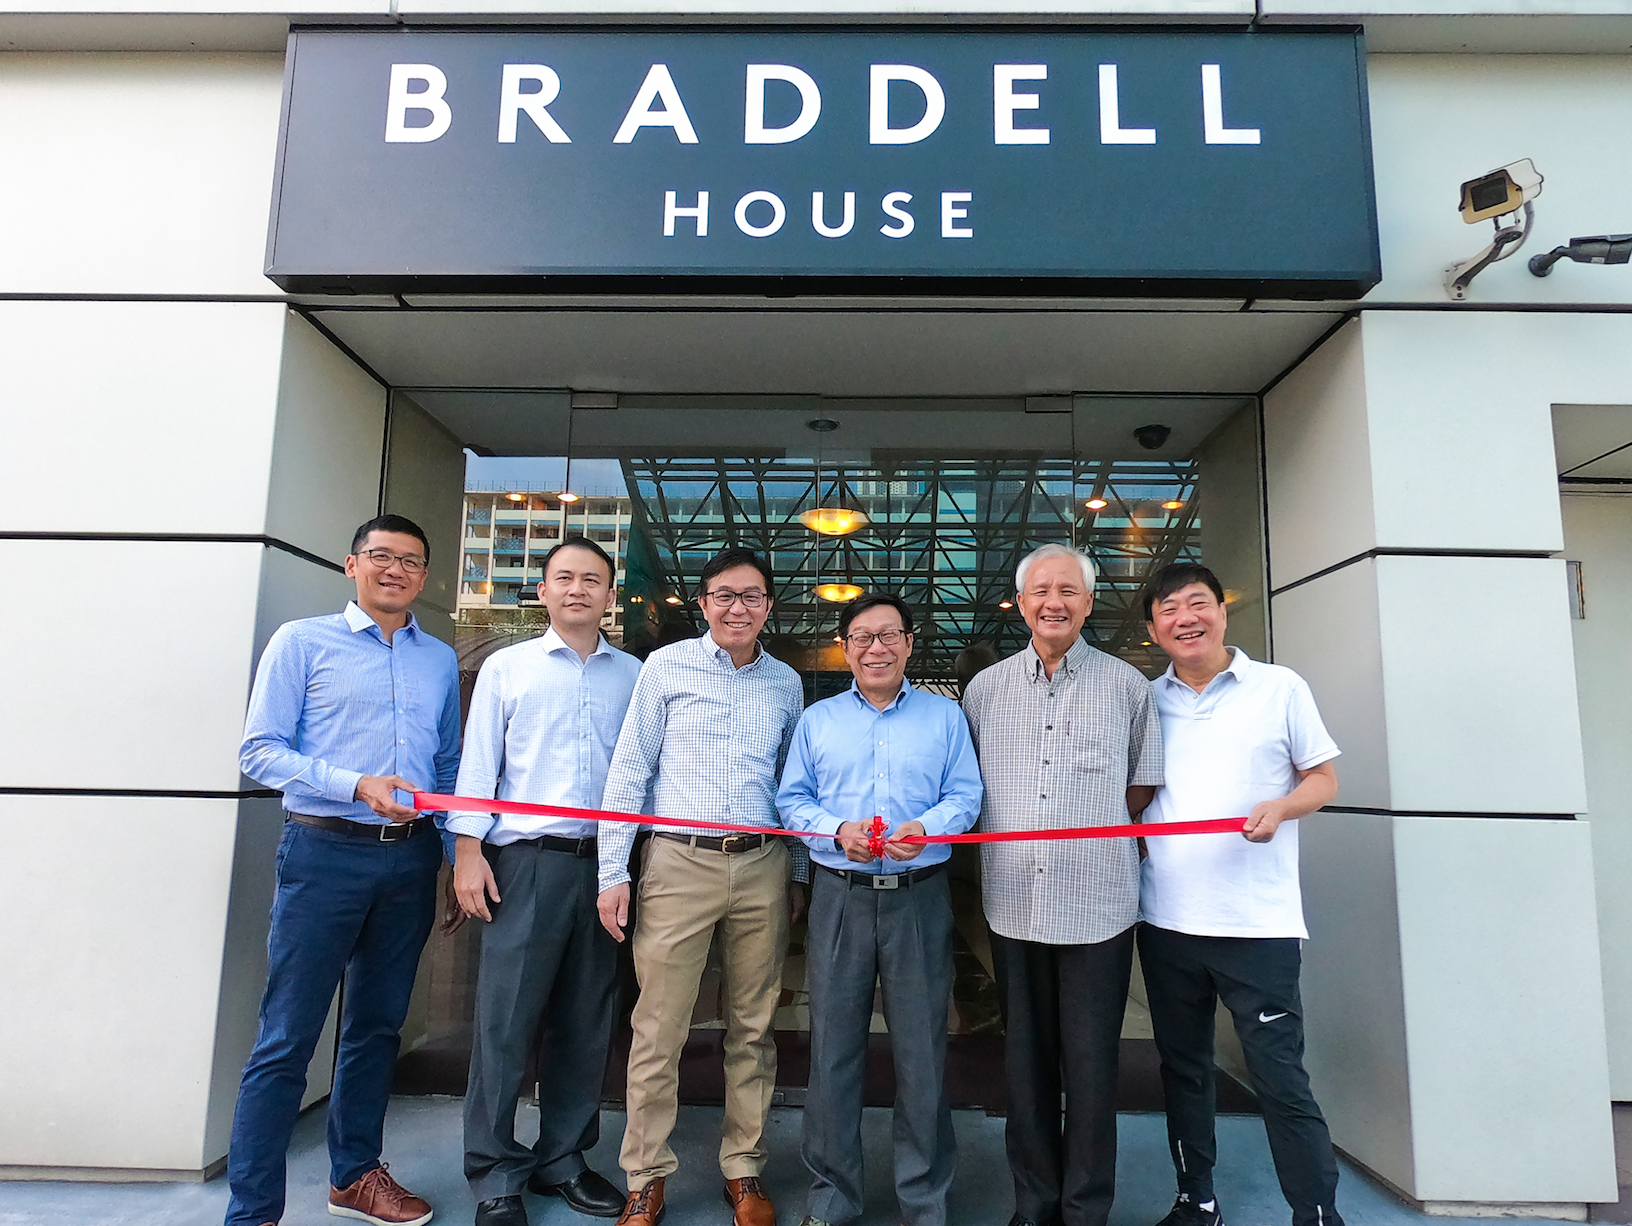 Board of Directors and top management unveil Braddell House on Jan 2, 2019, completing the transformation of GYP Properties into a property company. From left: Chua Joan Keat, Chief Financial Officer; Loo Wen Lieh, Director; Ng Tiong Gee, Director; Mah Bow Tan, Chairman; Andrew Tay, Director; and Stanley Tan, Chief Executive Officer.